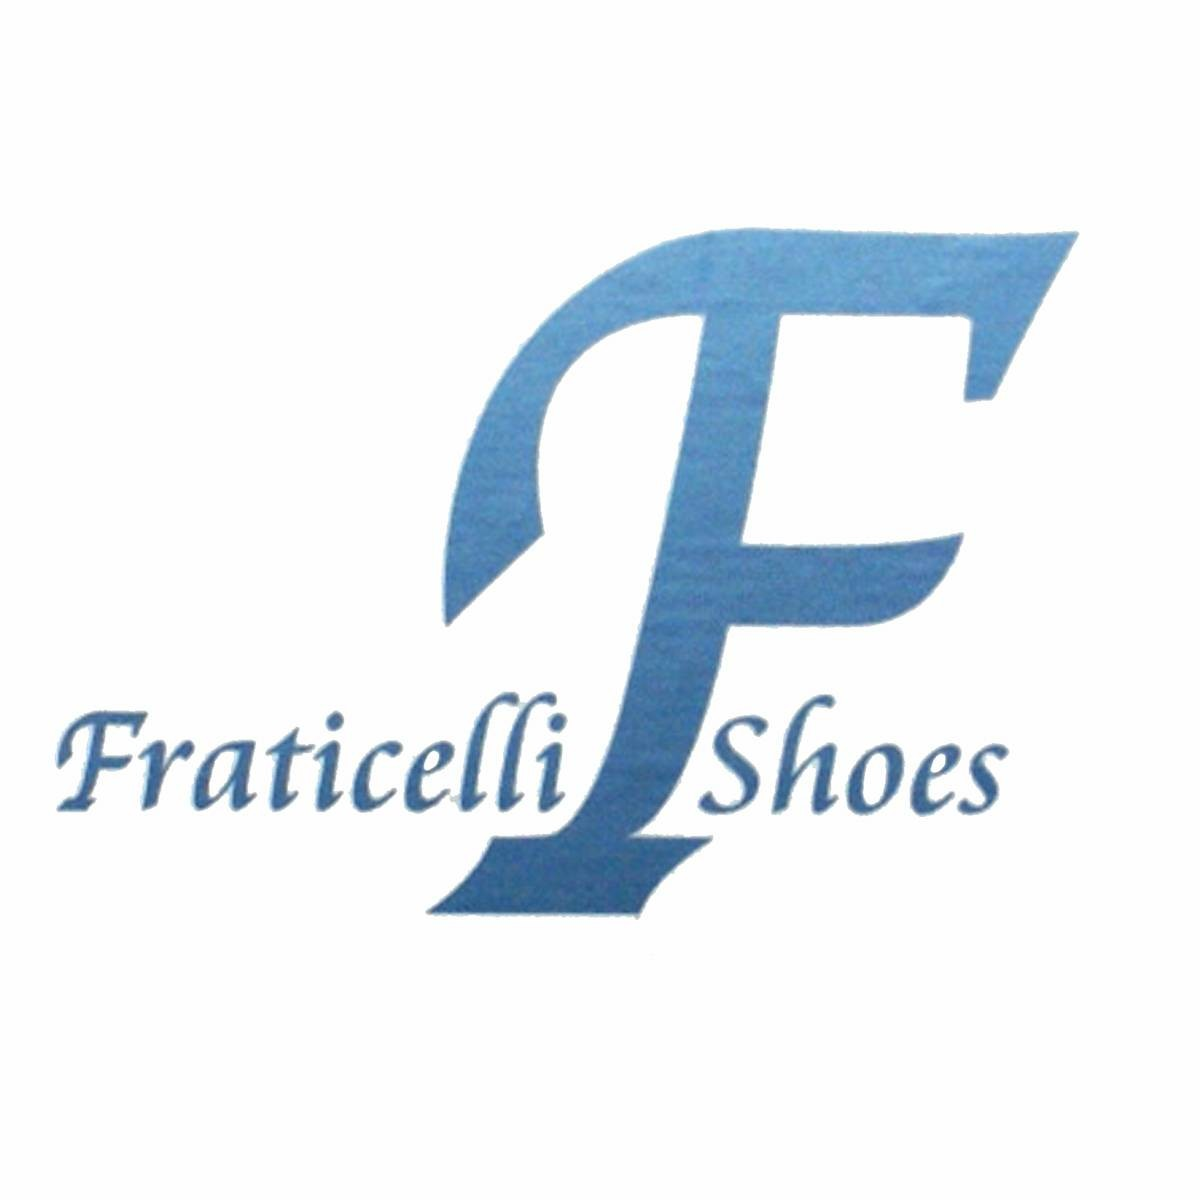 Fraticelli Shoes